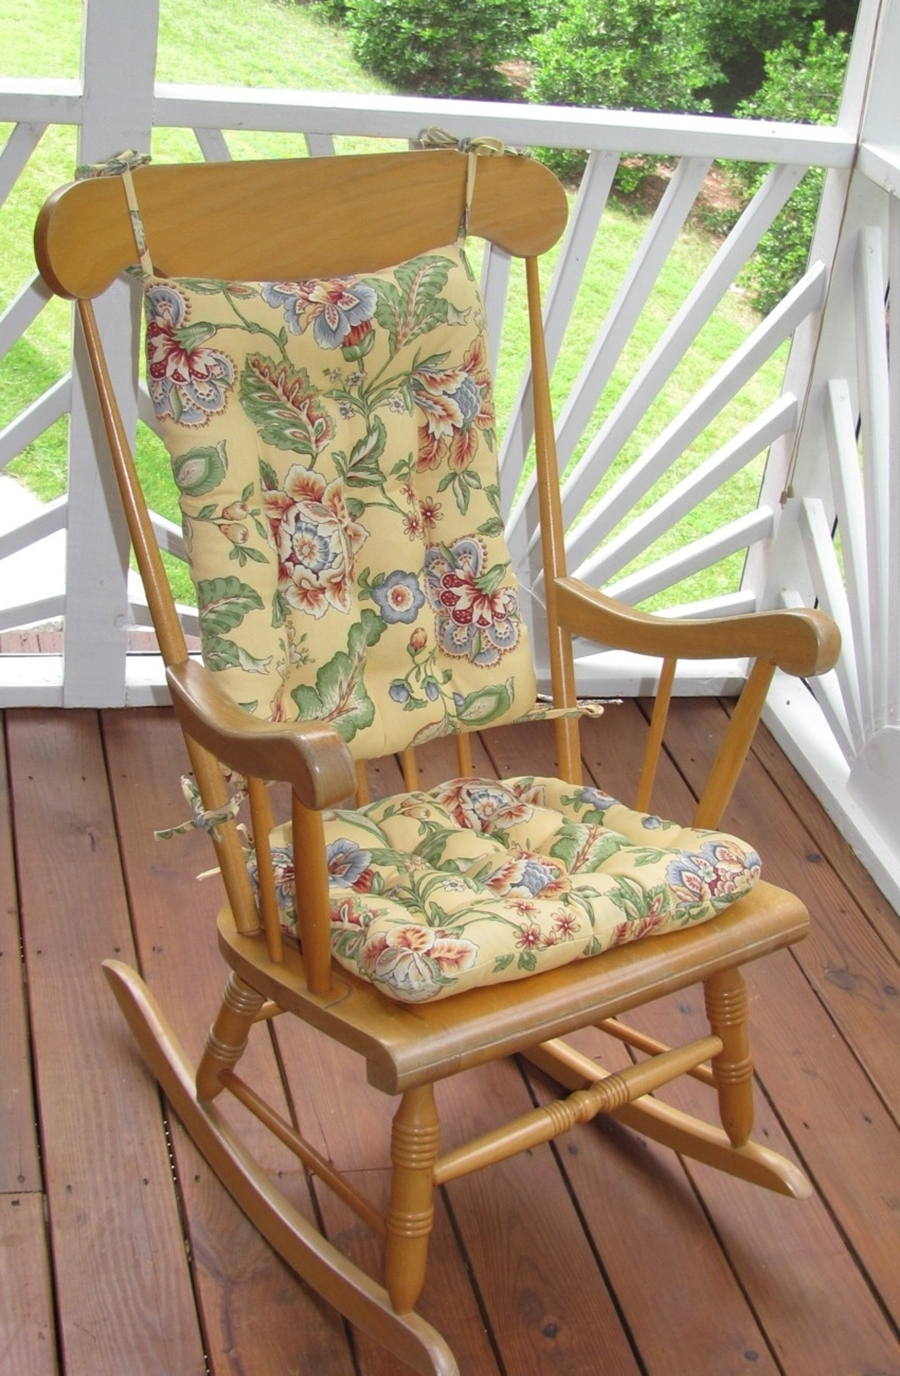 Well Known Rocking Chair Cushions For Outdoor For Outdoor Rocking Chair Cushions Theme — All Modern Rocking Chairs (View 5 of 15)